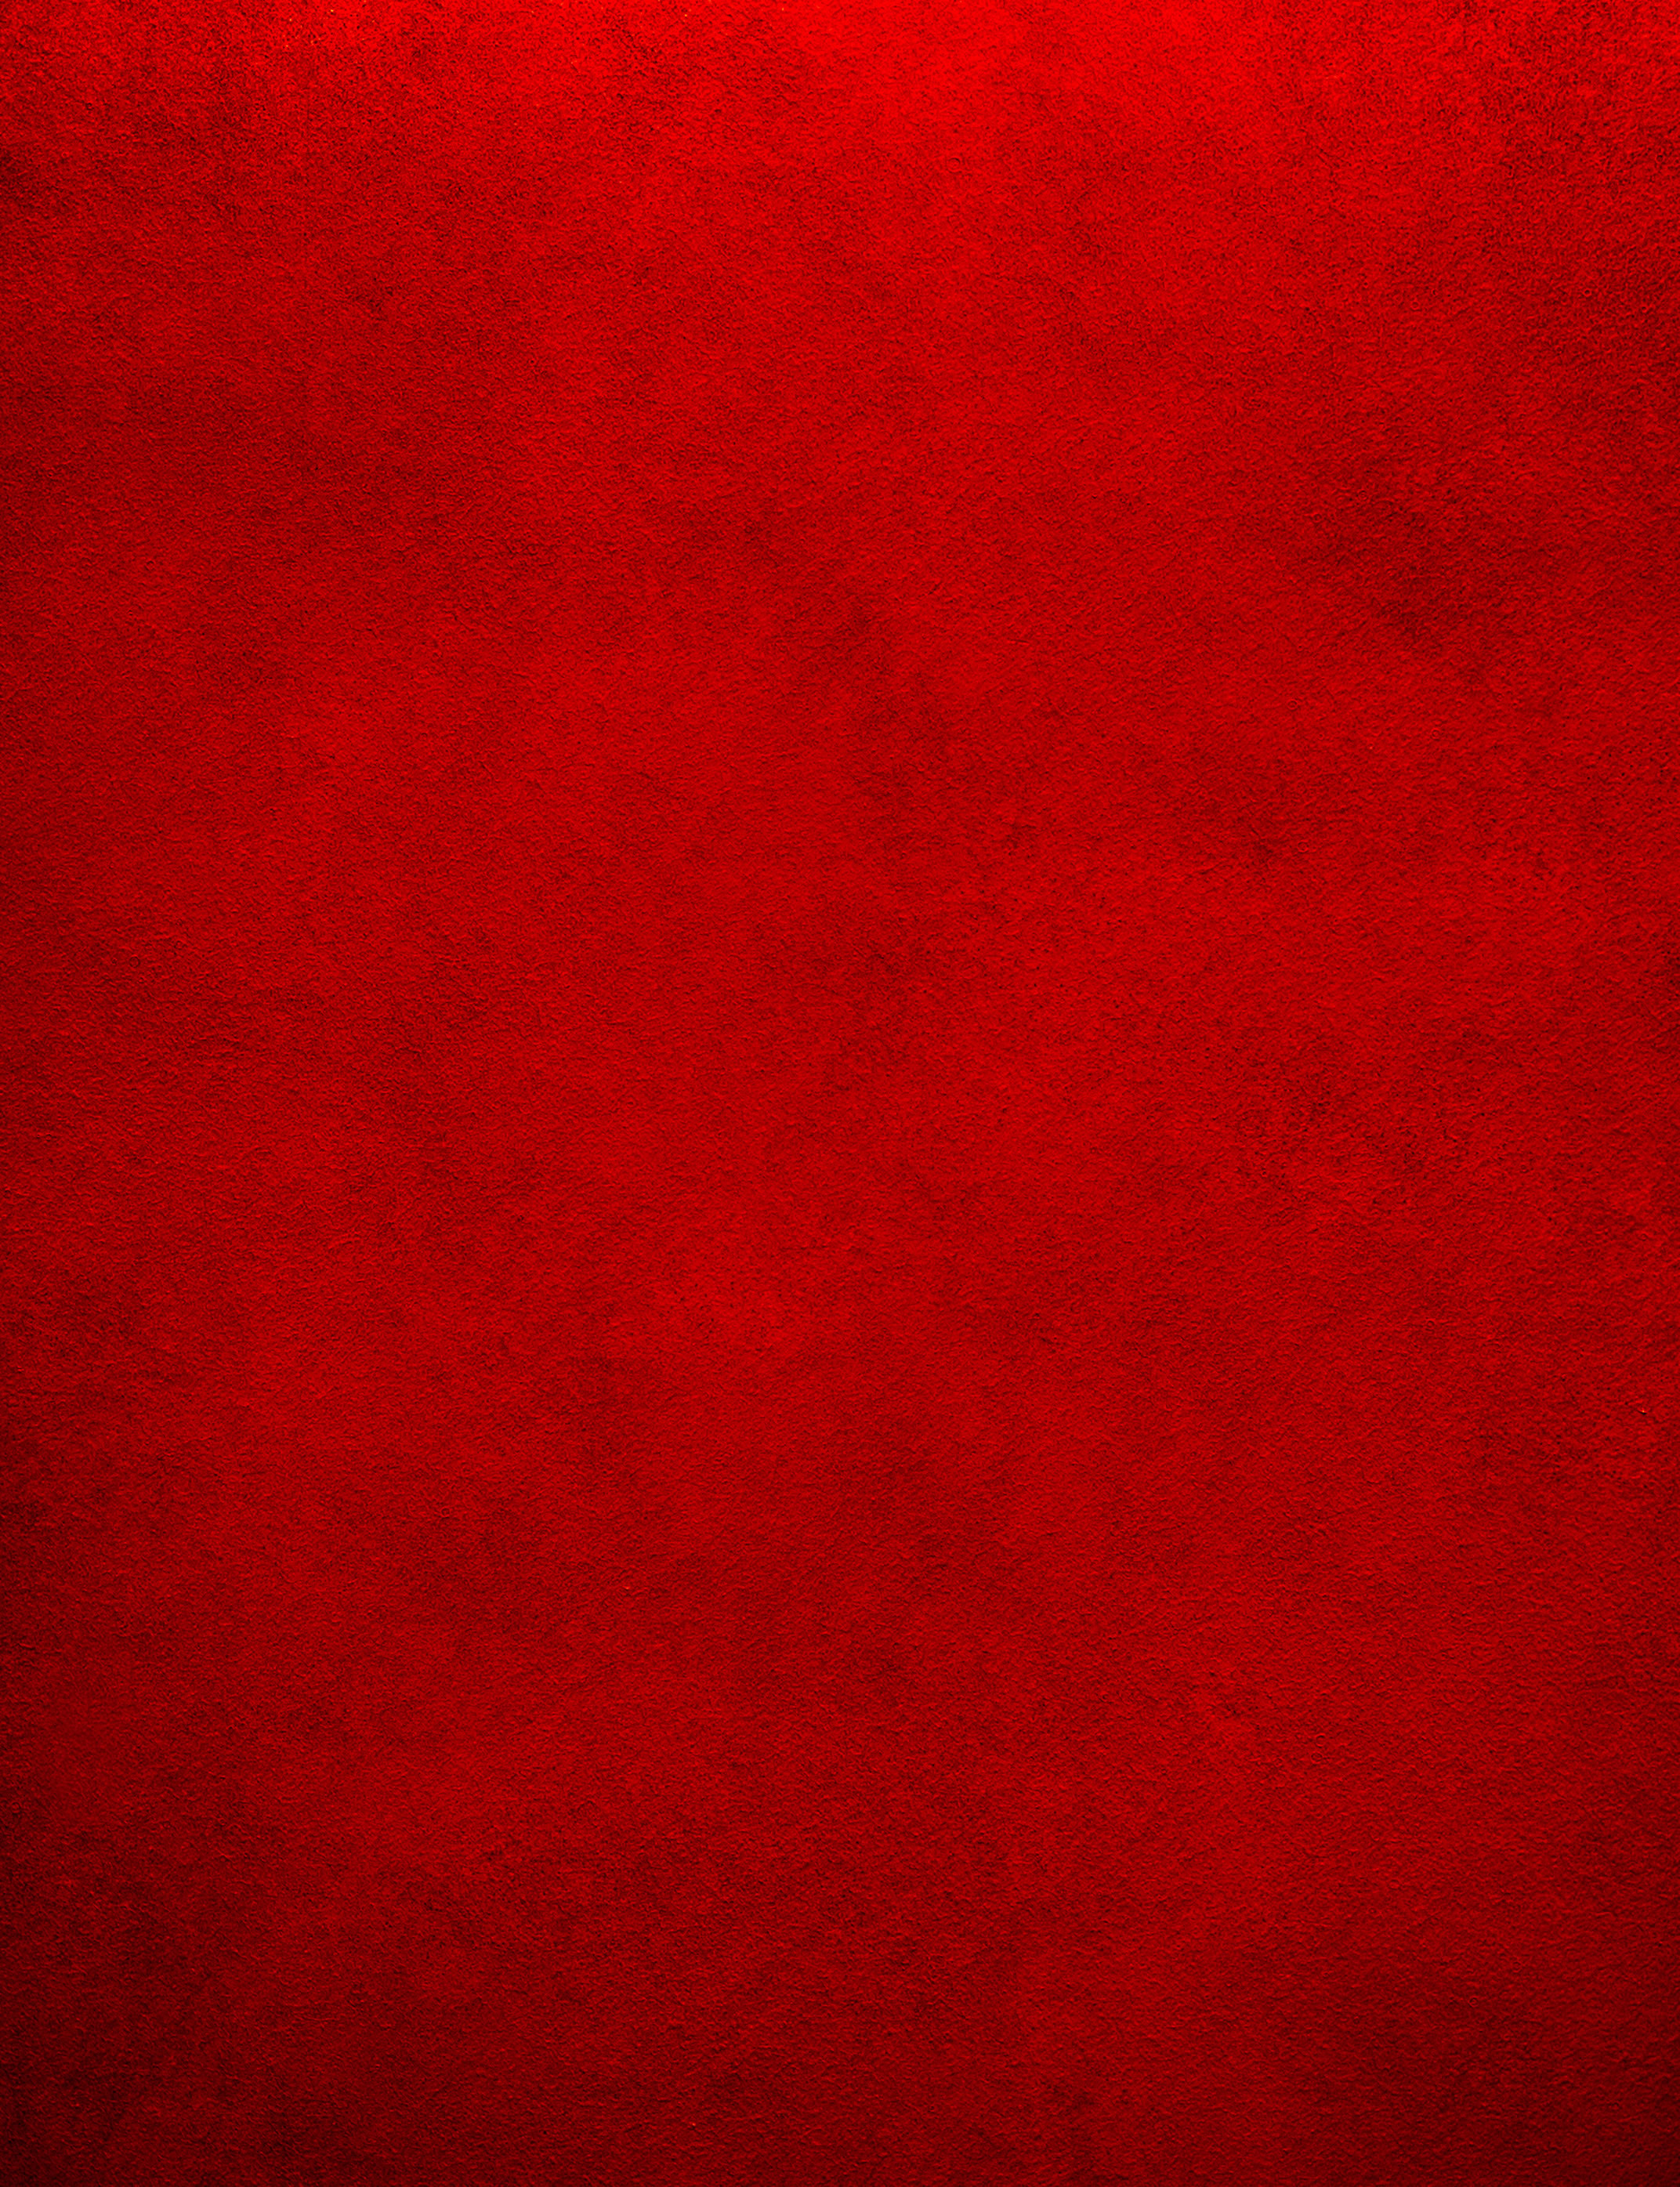 Red Texture Backgrounds ...